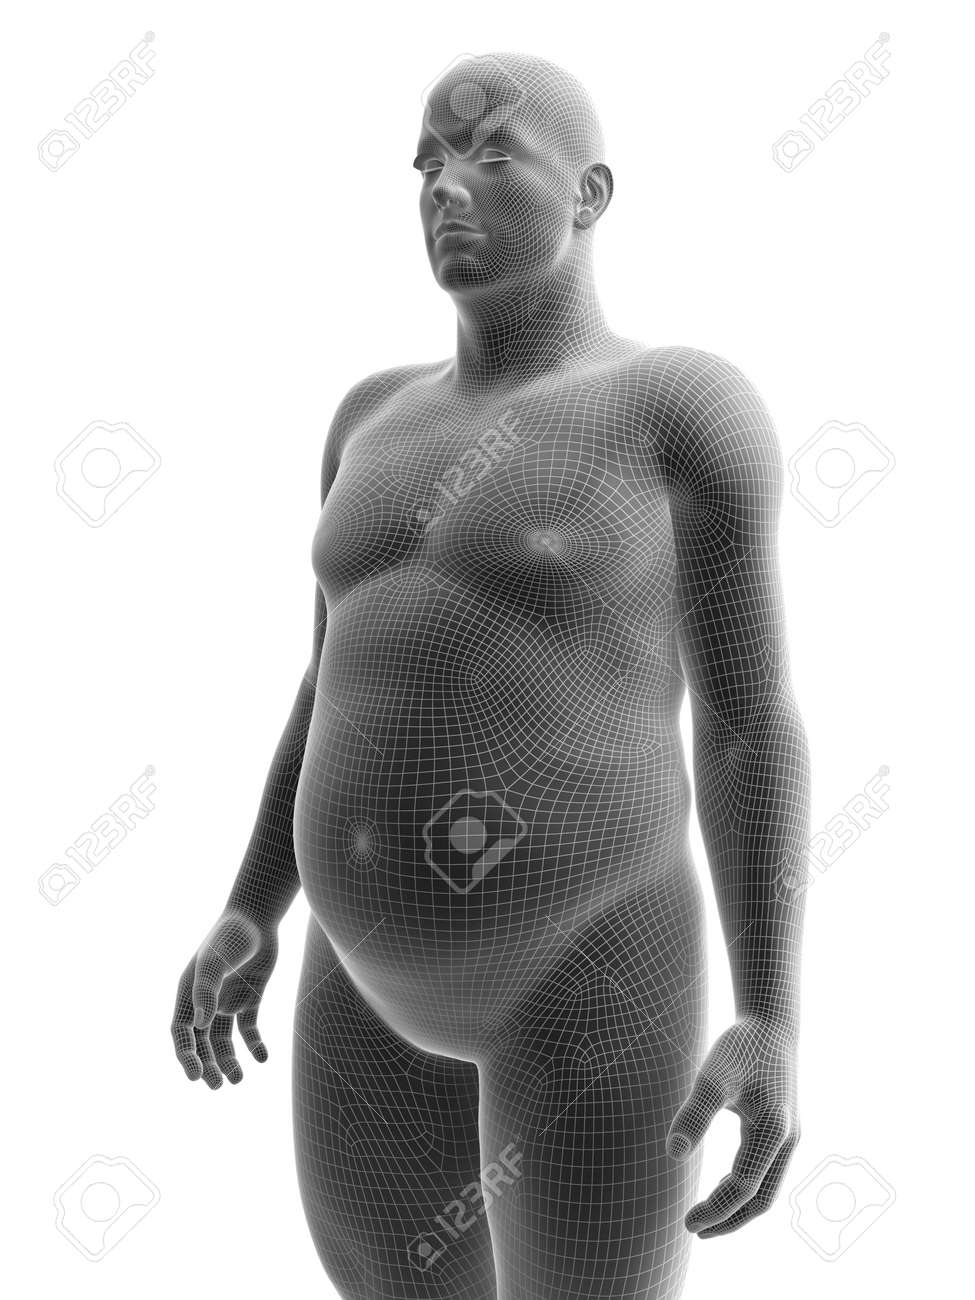 3d Rendered Medically Accurate Illustration Of An Obese Male Stock Photo Picture And Royalty Free Image Image 140959912